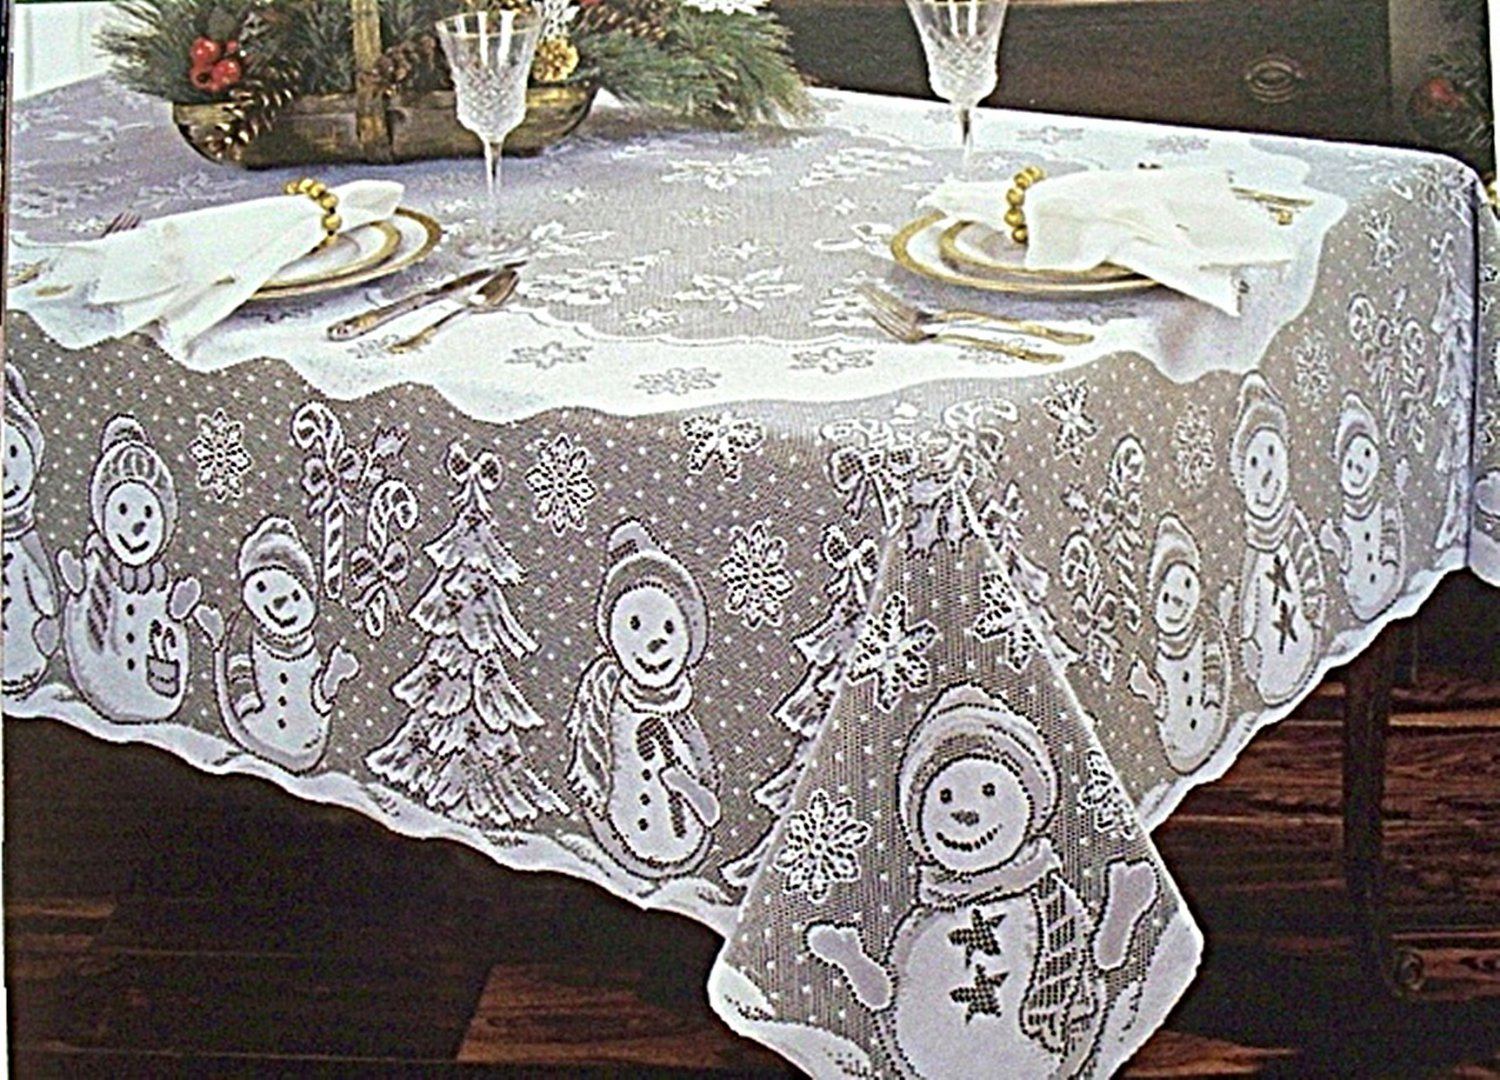 Product - Poinsettia Red Lace Christmas Tablecloth, Round. Product Image. Price $ 7. Product Title. Poinsettia Red Lace Christmas Tablecloth, Round. Lace Tablecloths Round, Lace Table Overlay Linens, Lace Table Toppers for Wedding Decorations, Events Banquet Party Supplies - Champagne. Product Image. Price $ .